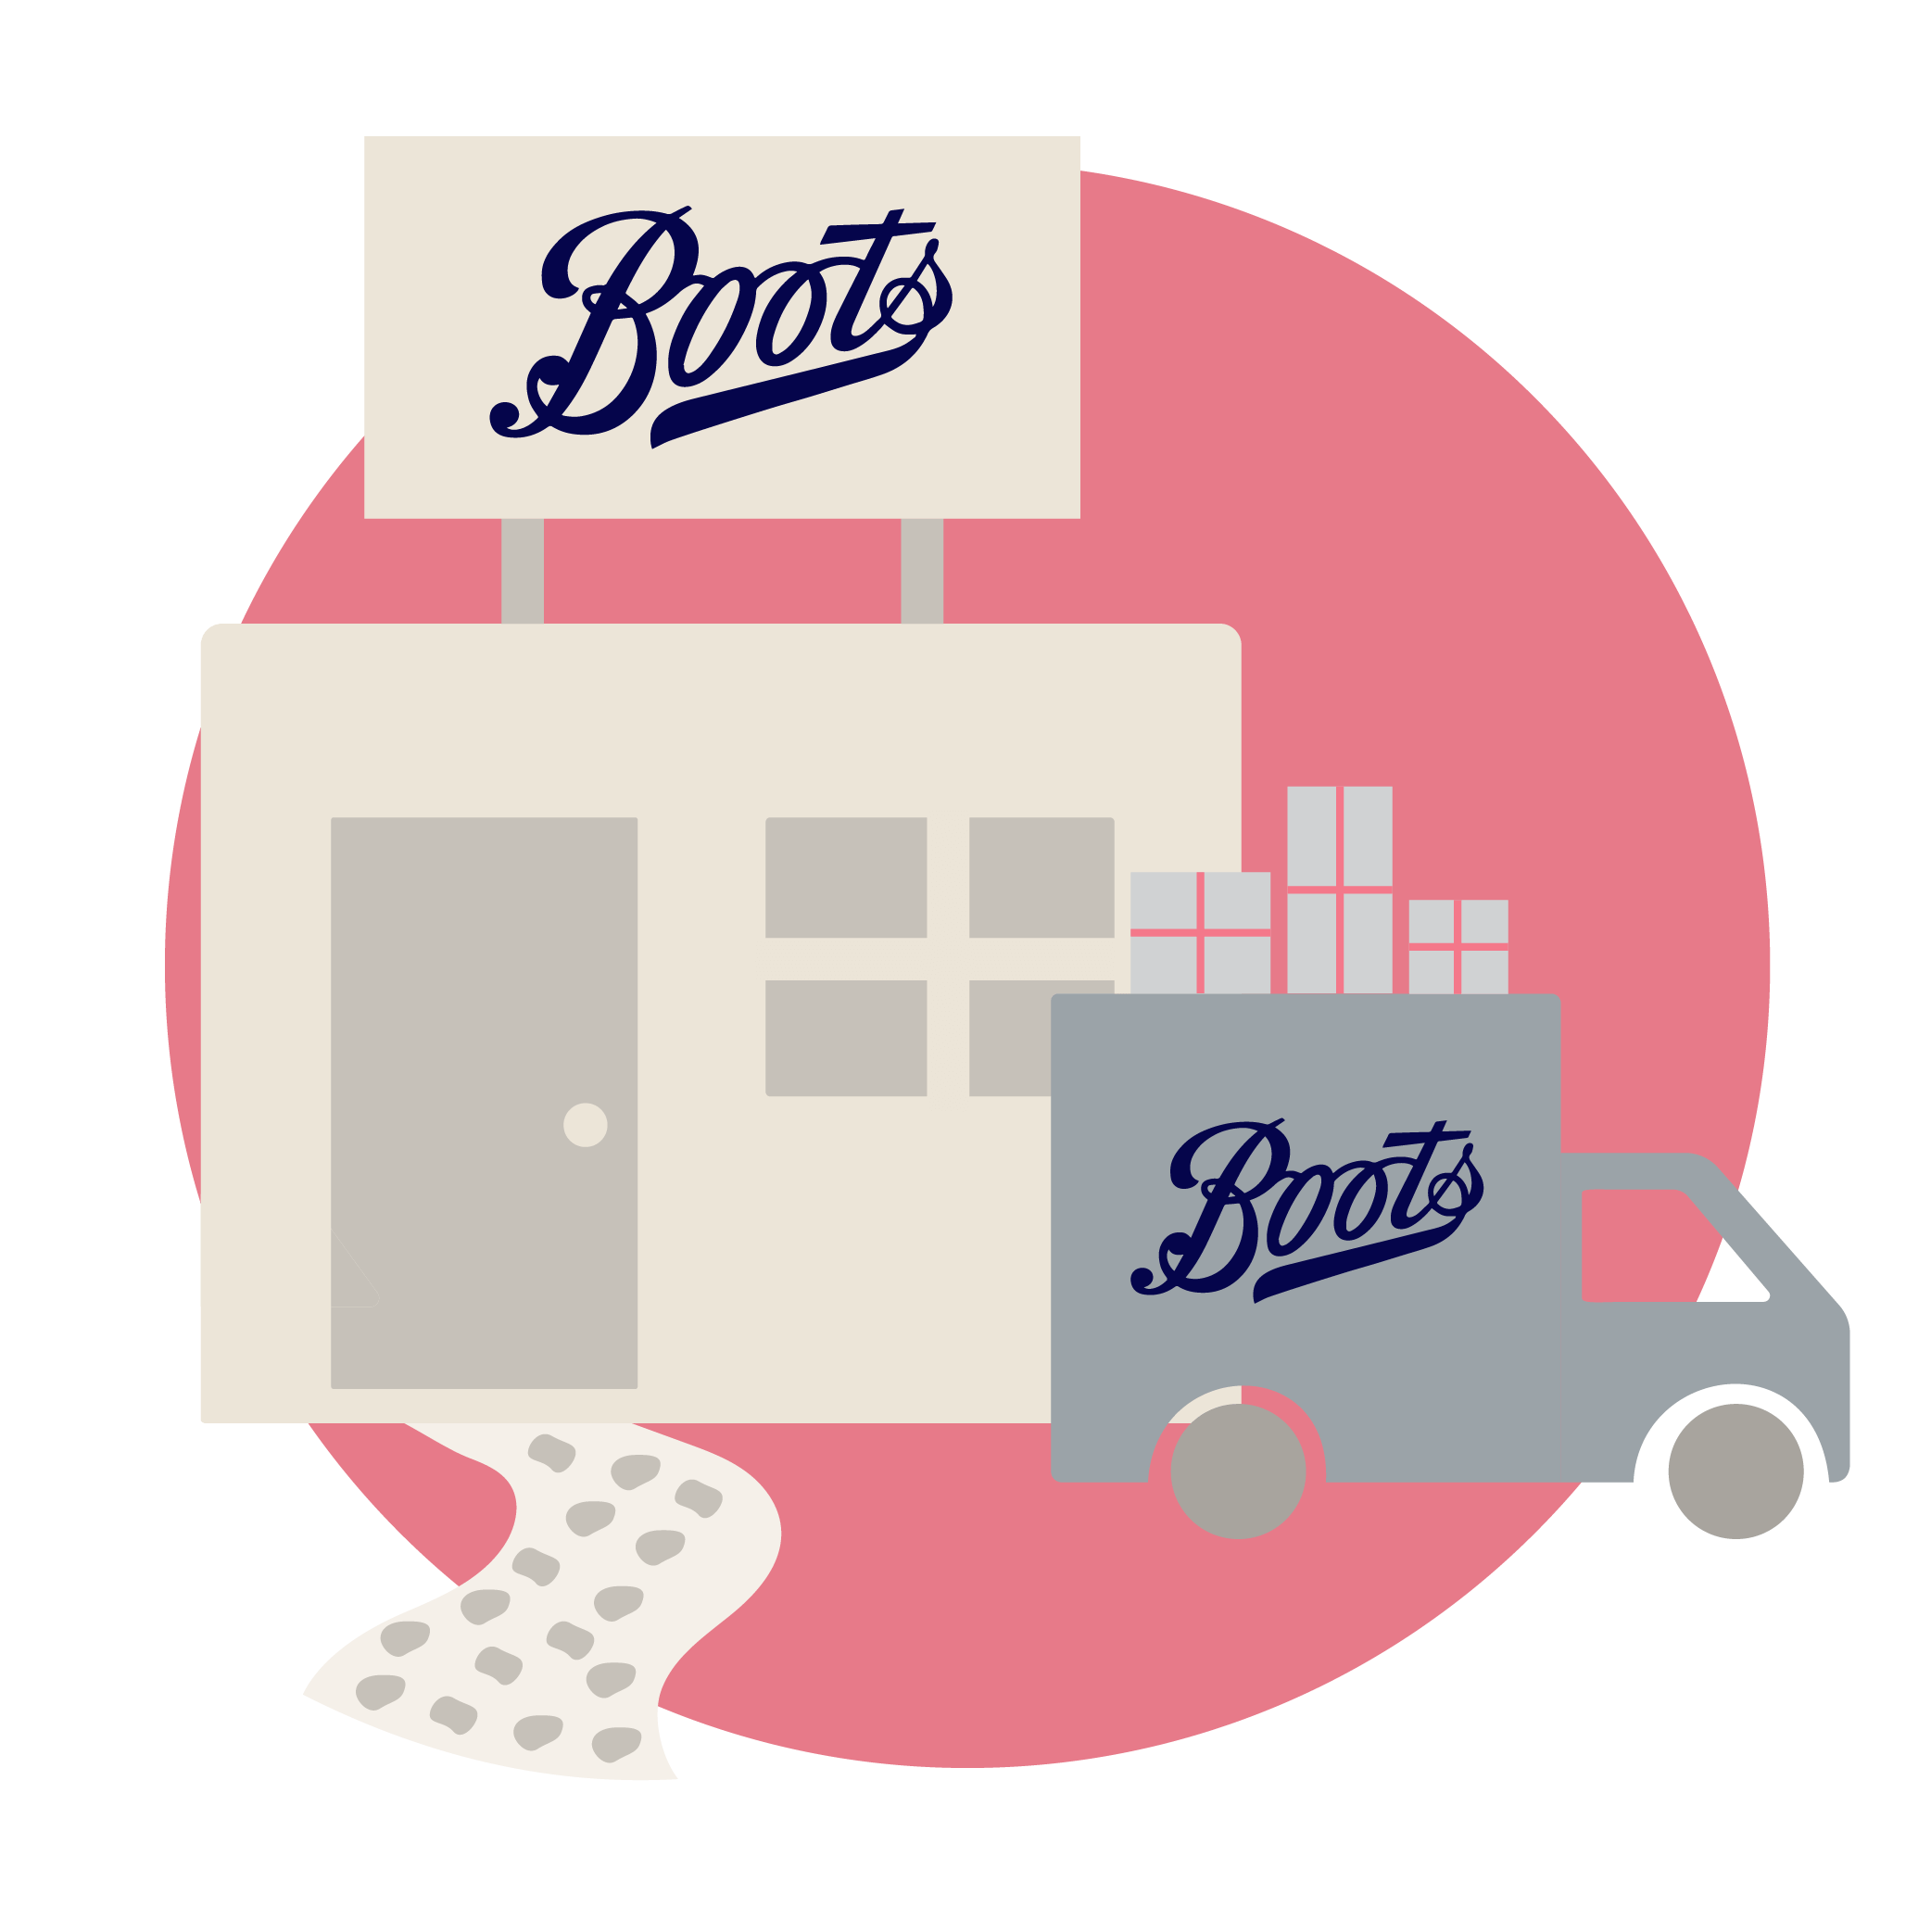 Delivery sexual health image